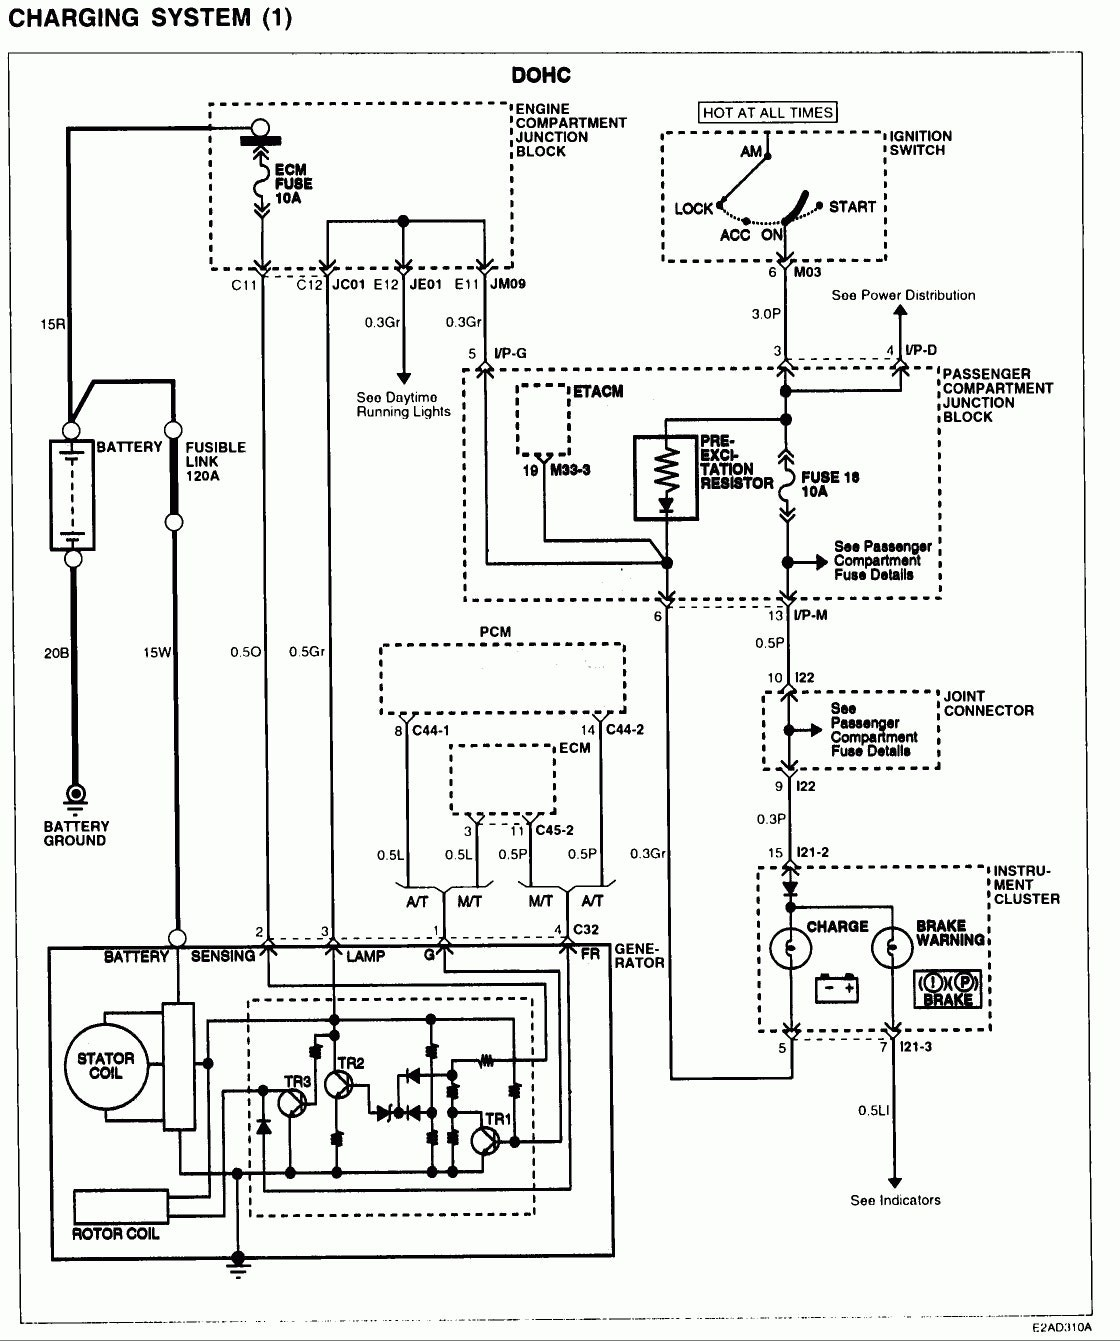 For Diagram Wiring Delphi